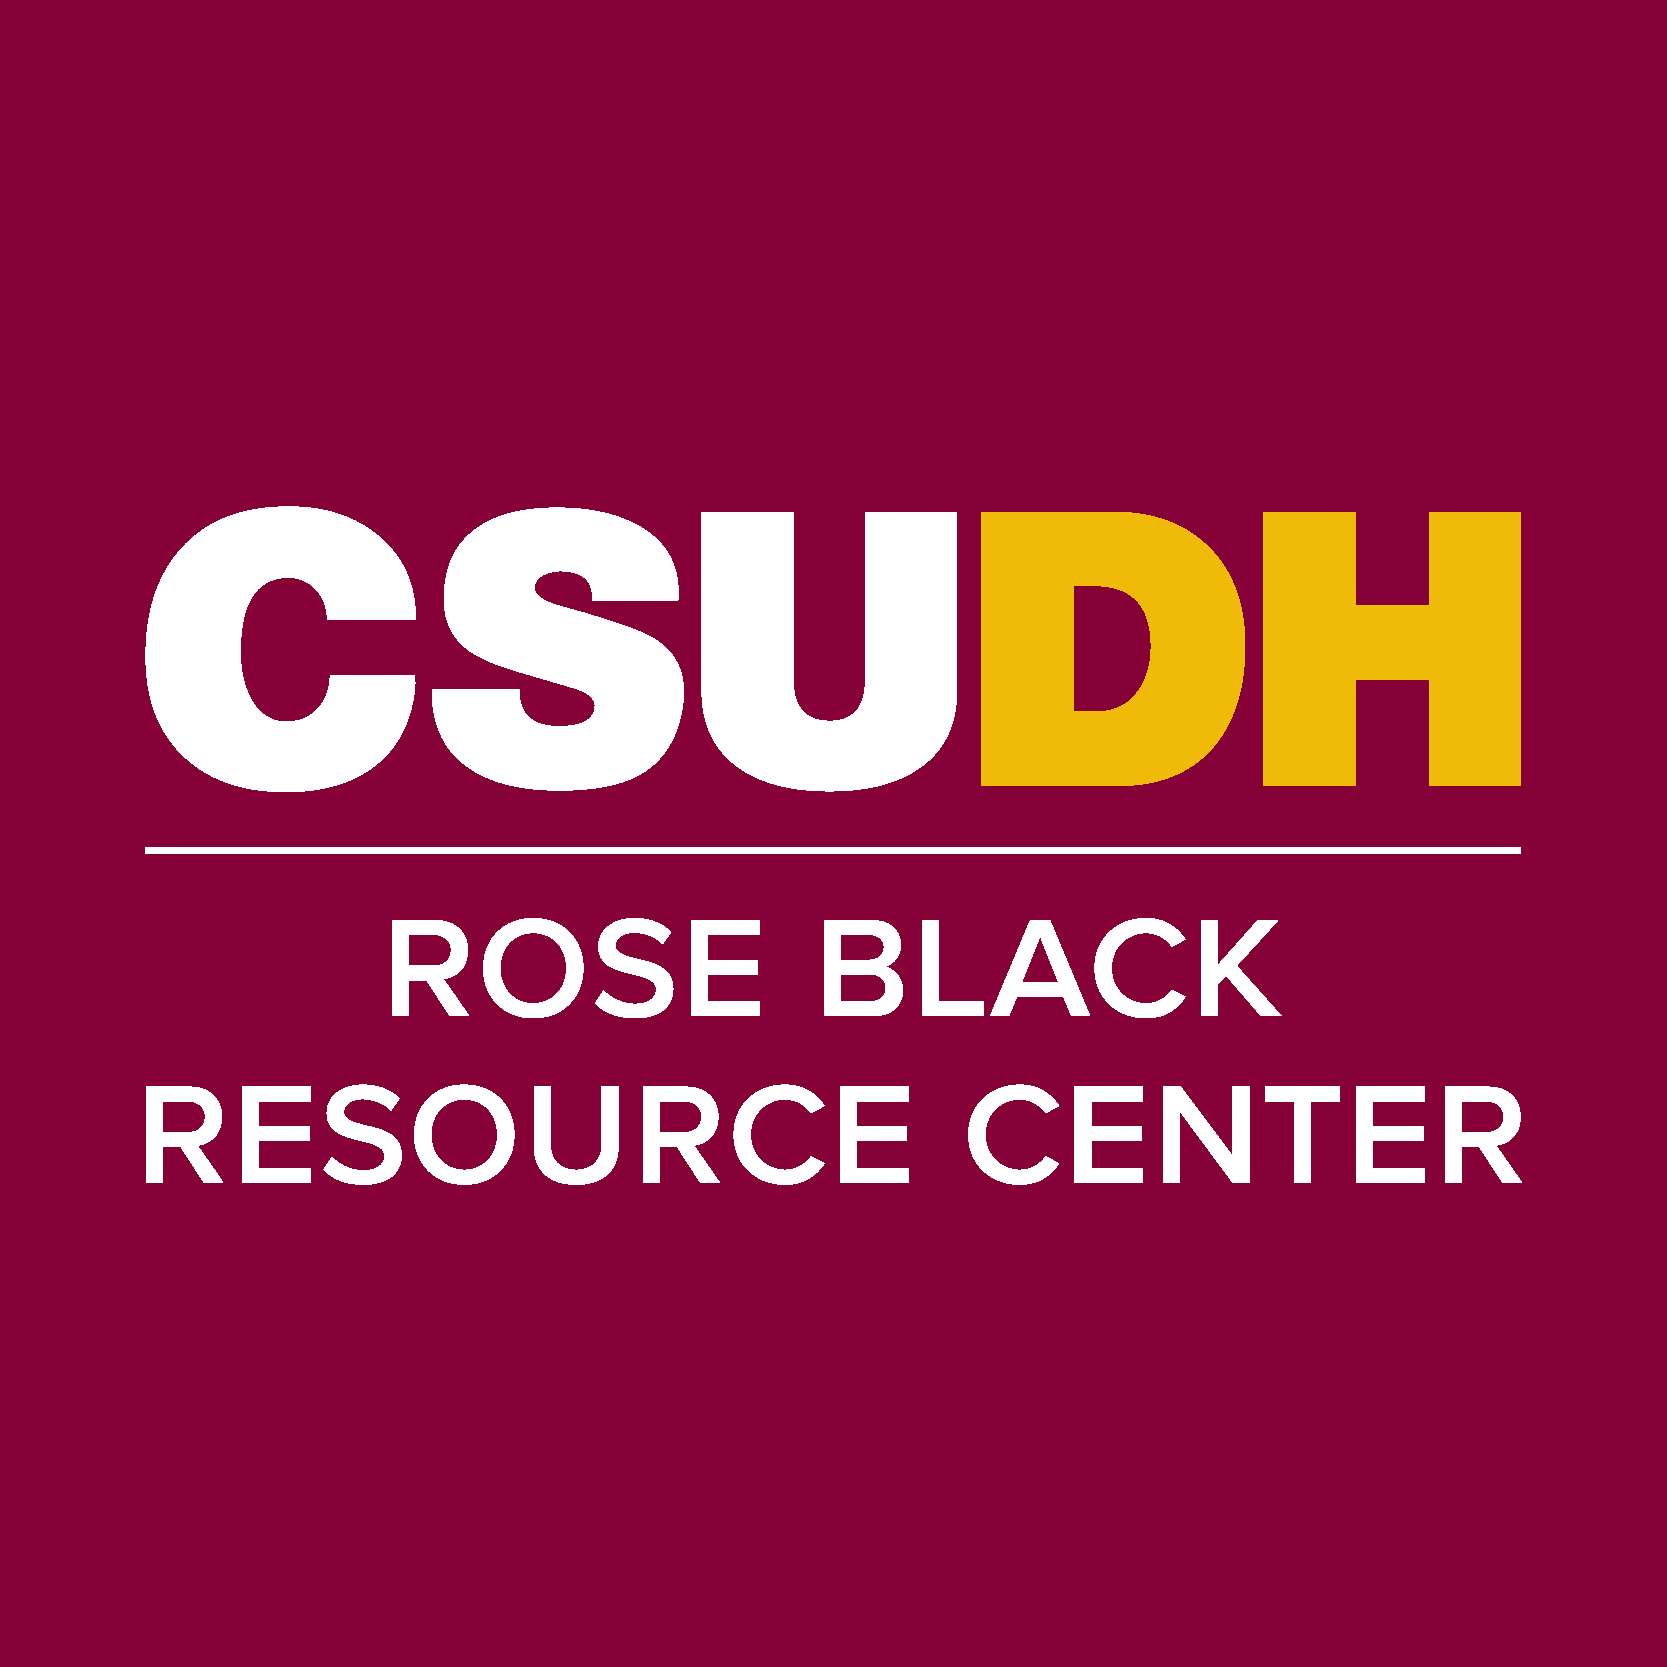 Rose Black Resource Center